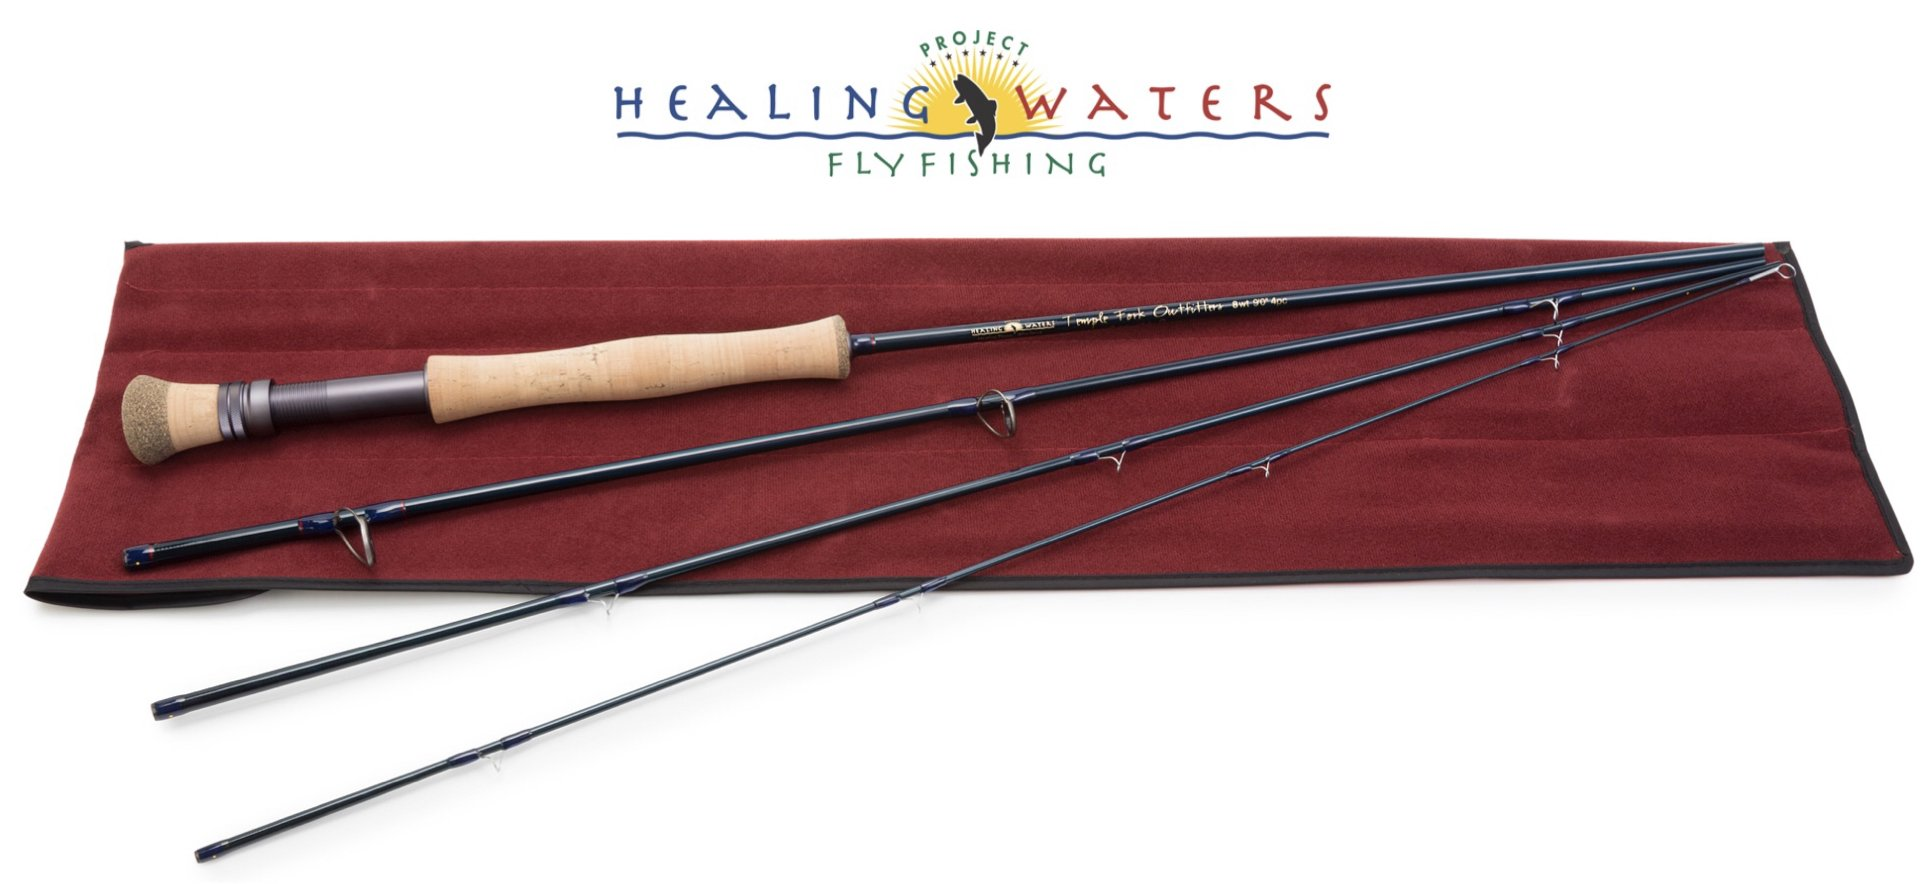 TFO Project Healing Waters 5wt